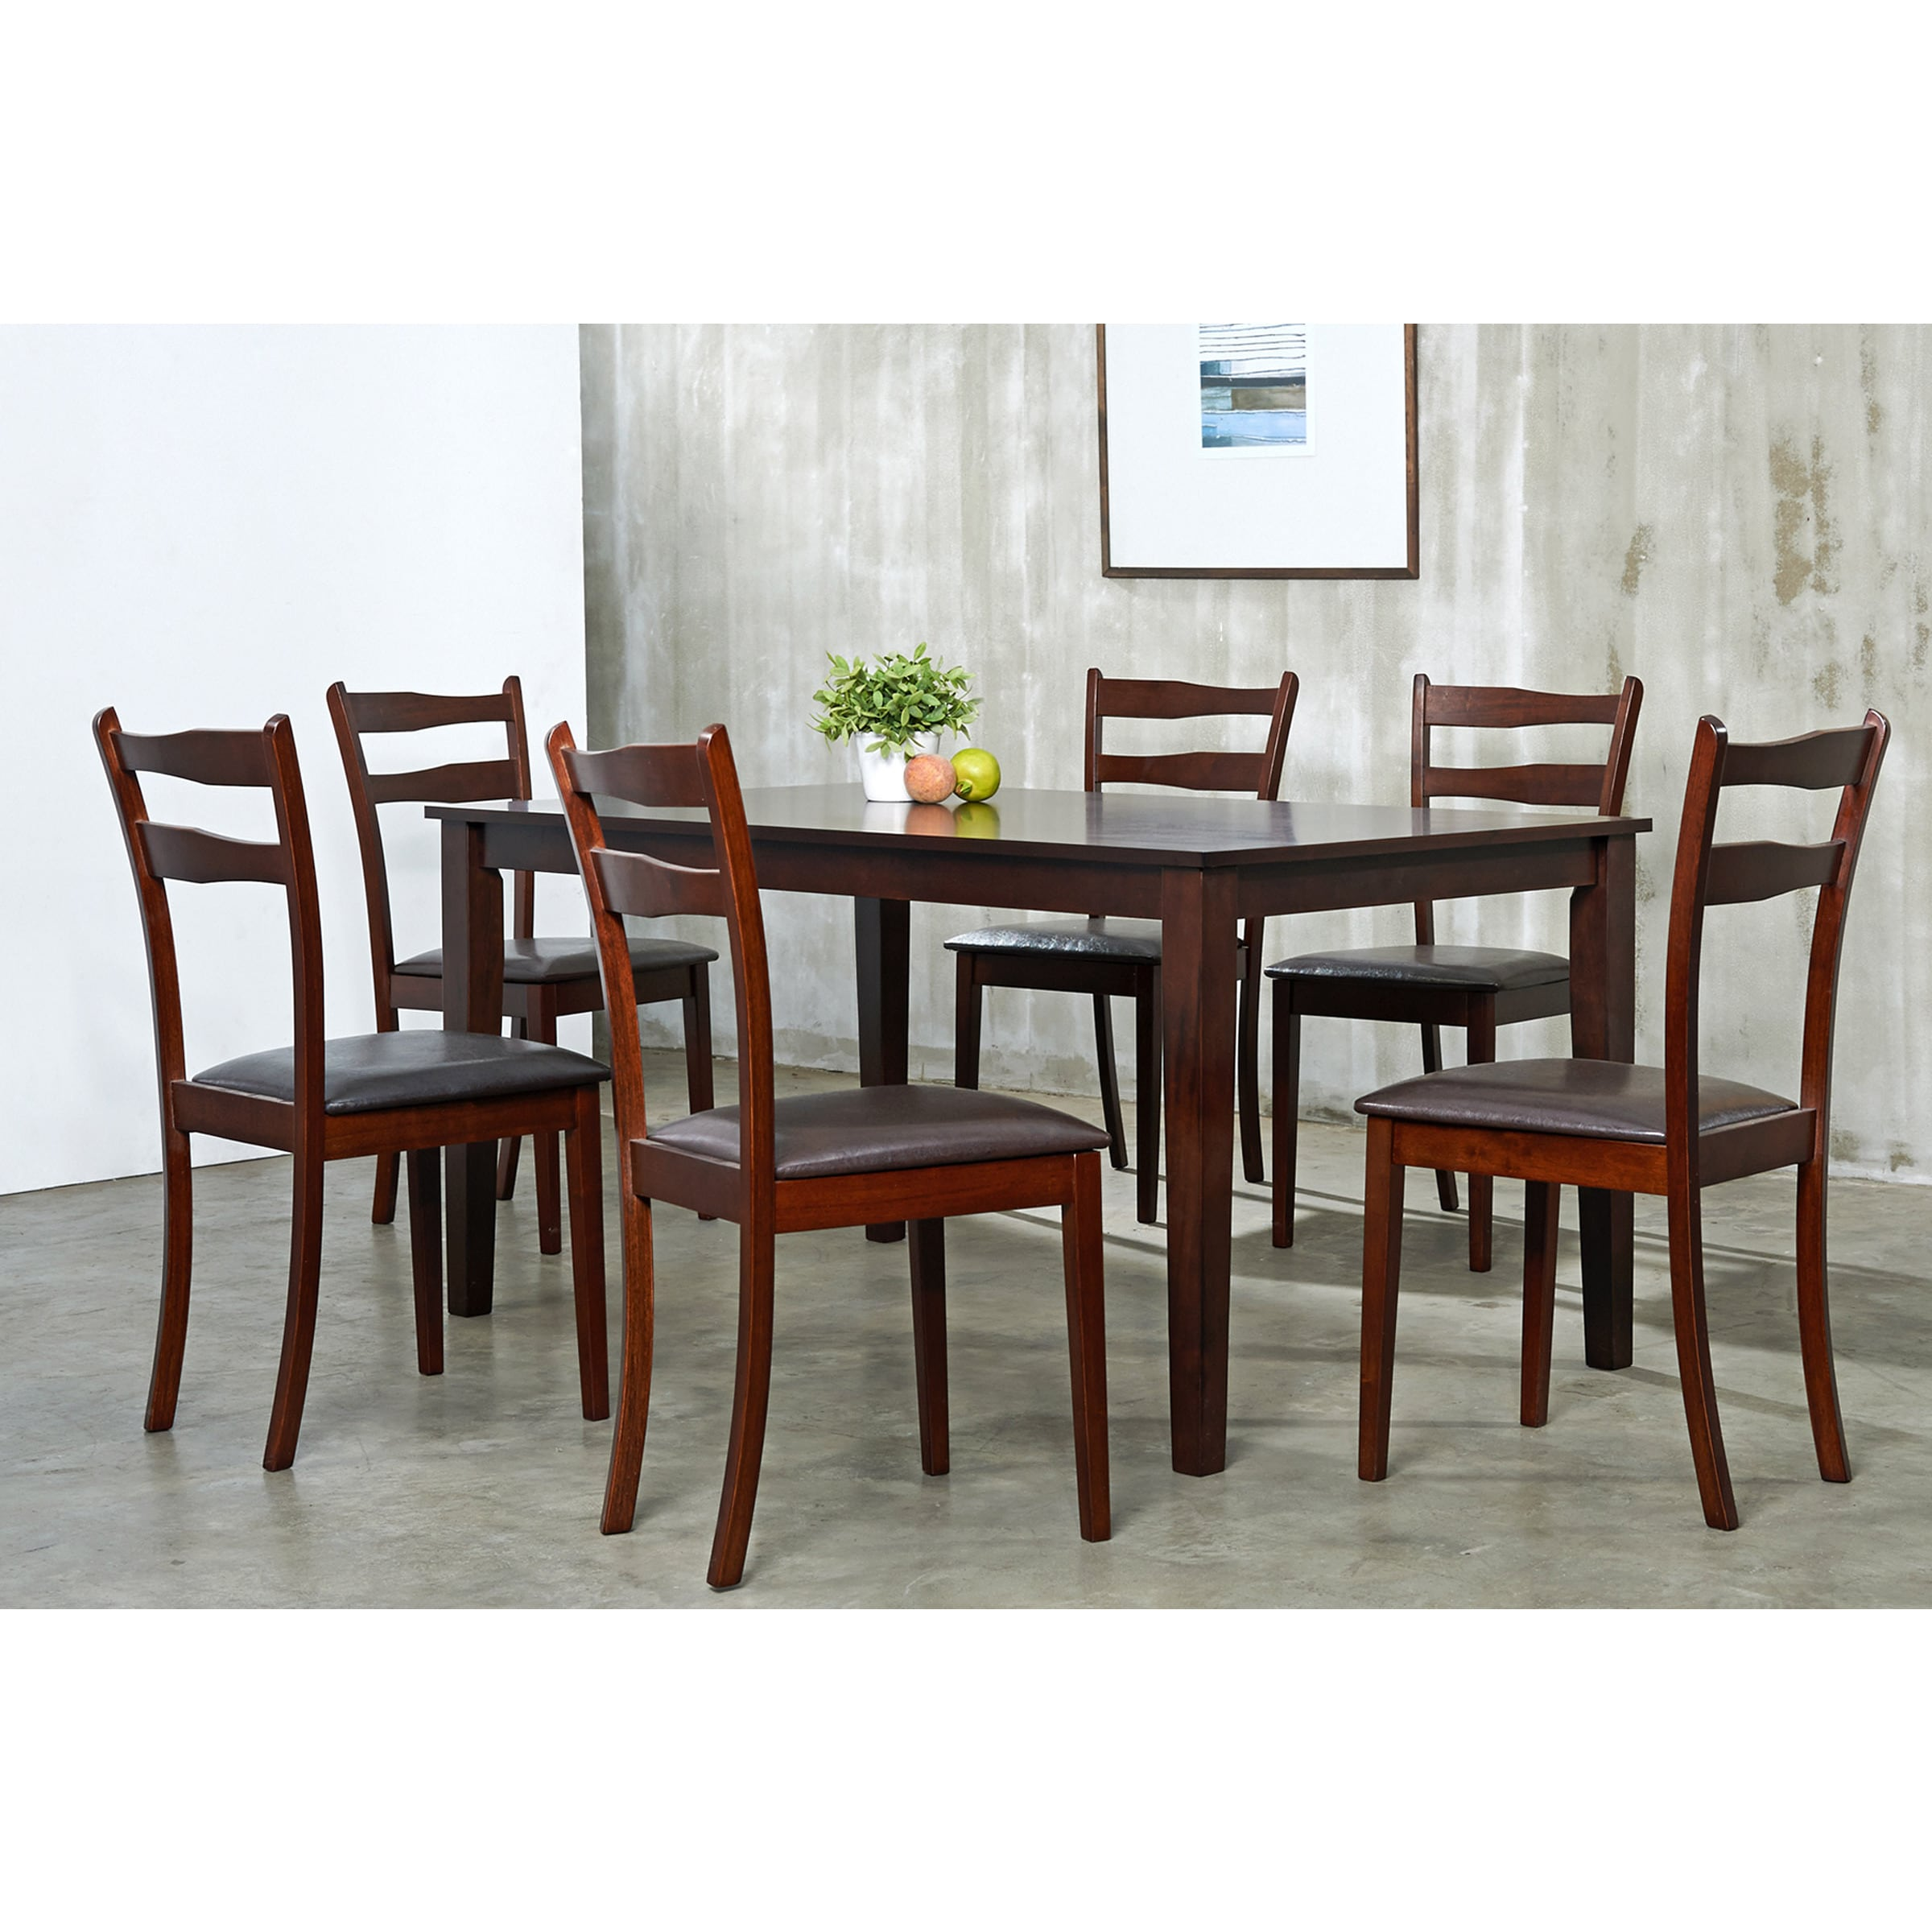 piece dining room furniture set overstock shopping big discounts